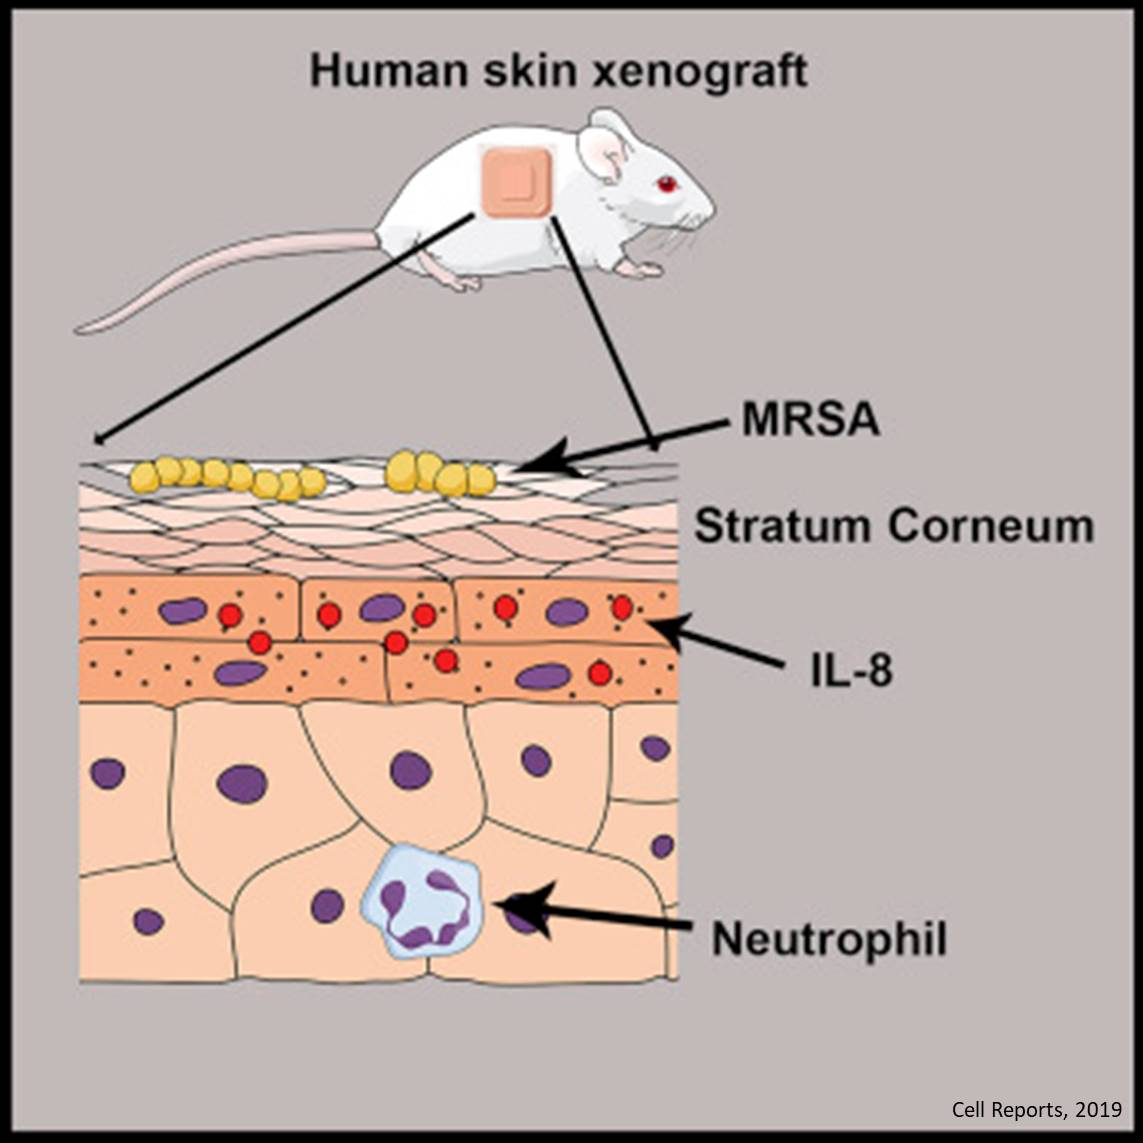 Immune cells in skin kill MRSA bacteria before they enter the body